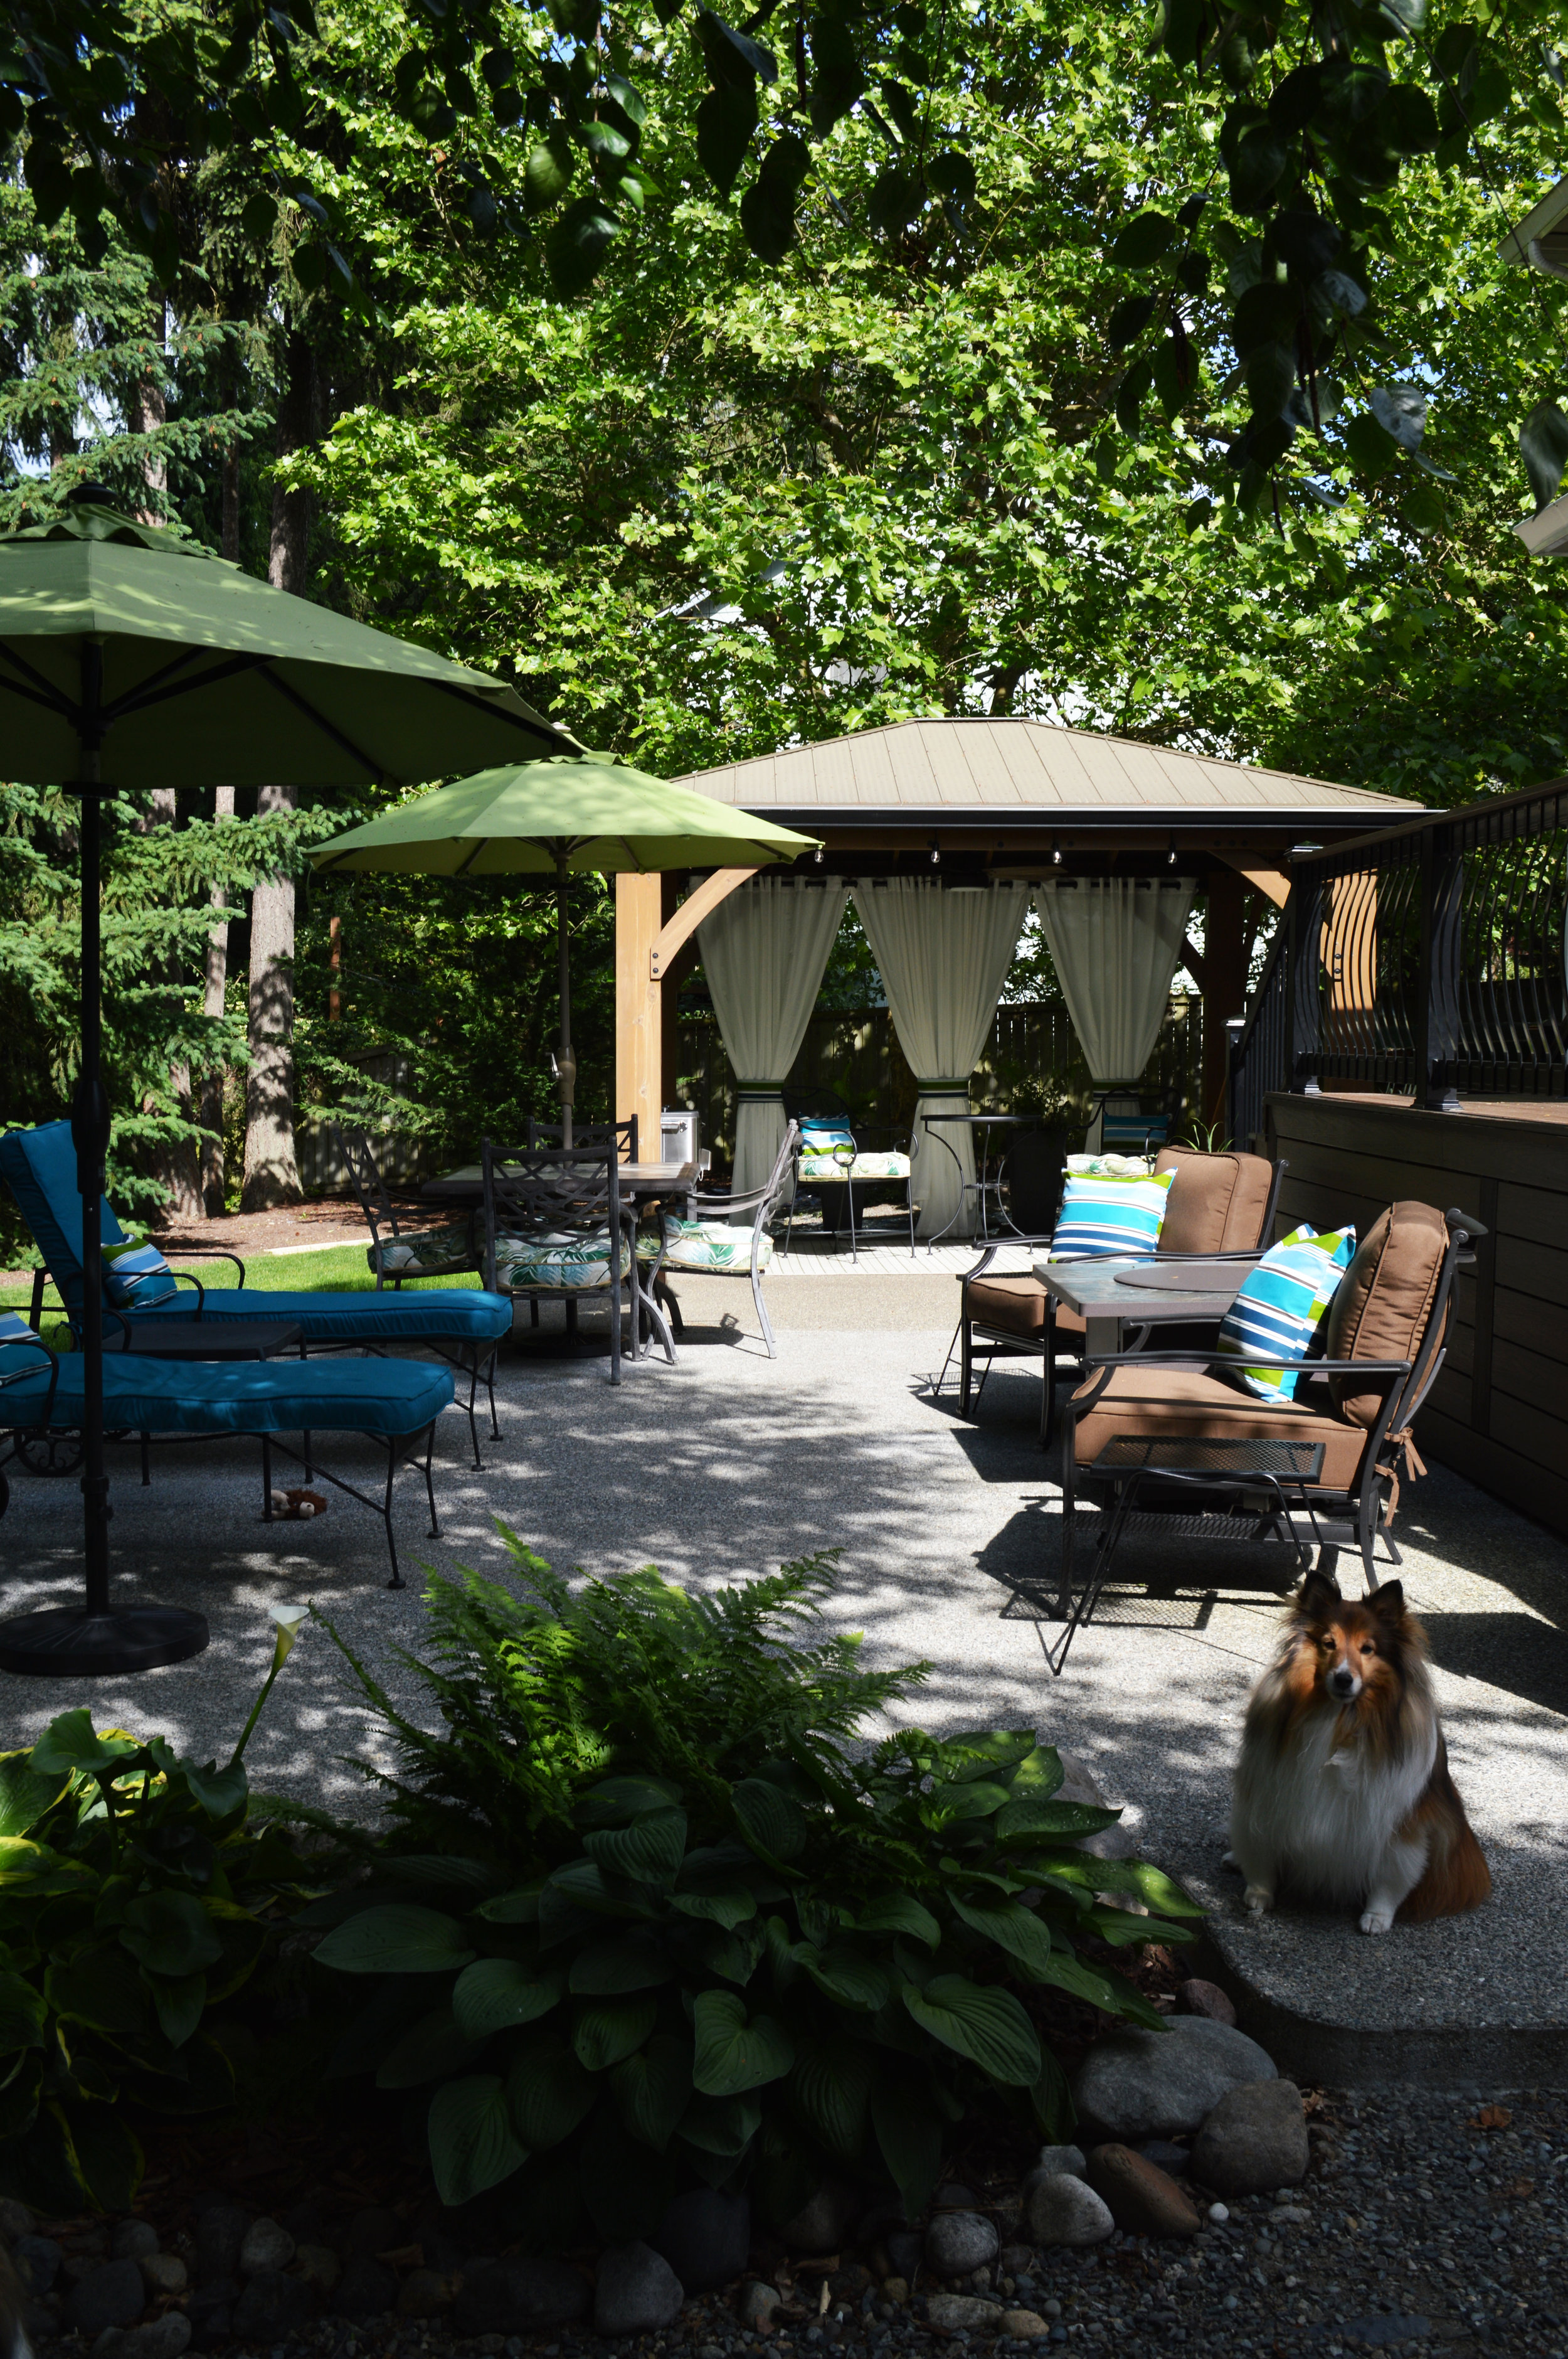 Patio living for man and man's best friends…